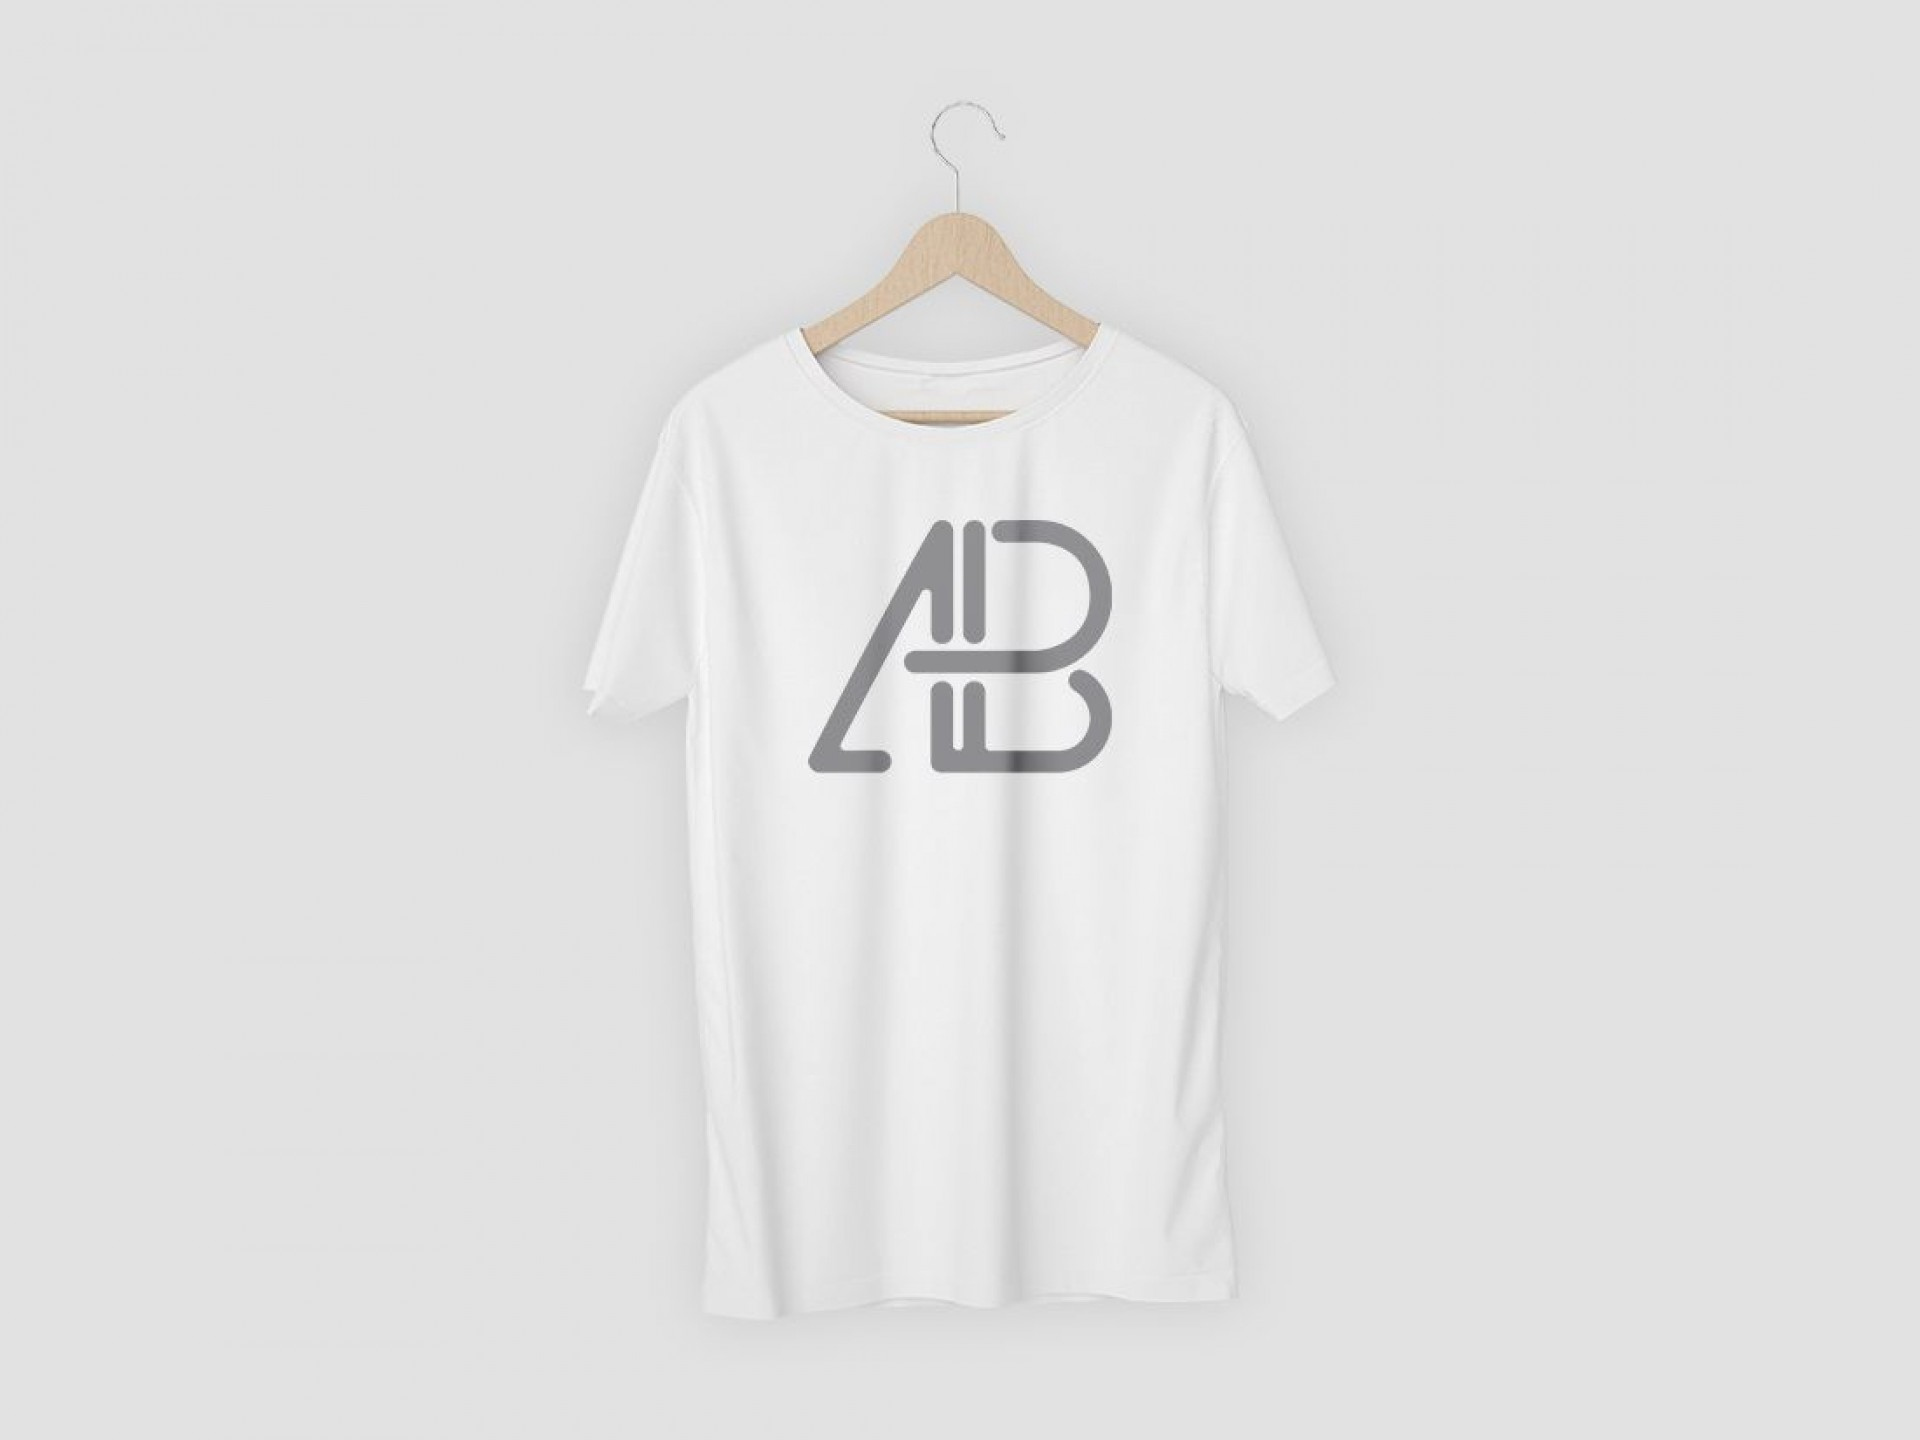 003 Awesome T Shirt Template Psd Highest Clarity  Design Mockup Free White Collar1920